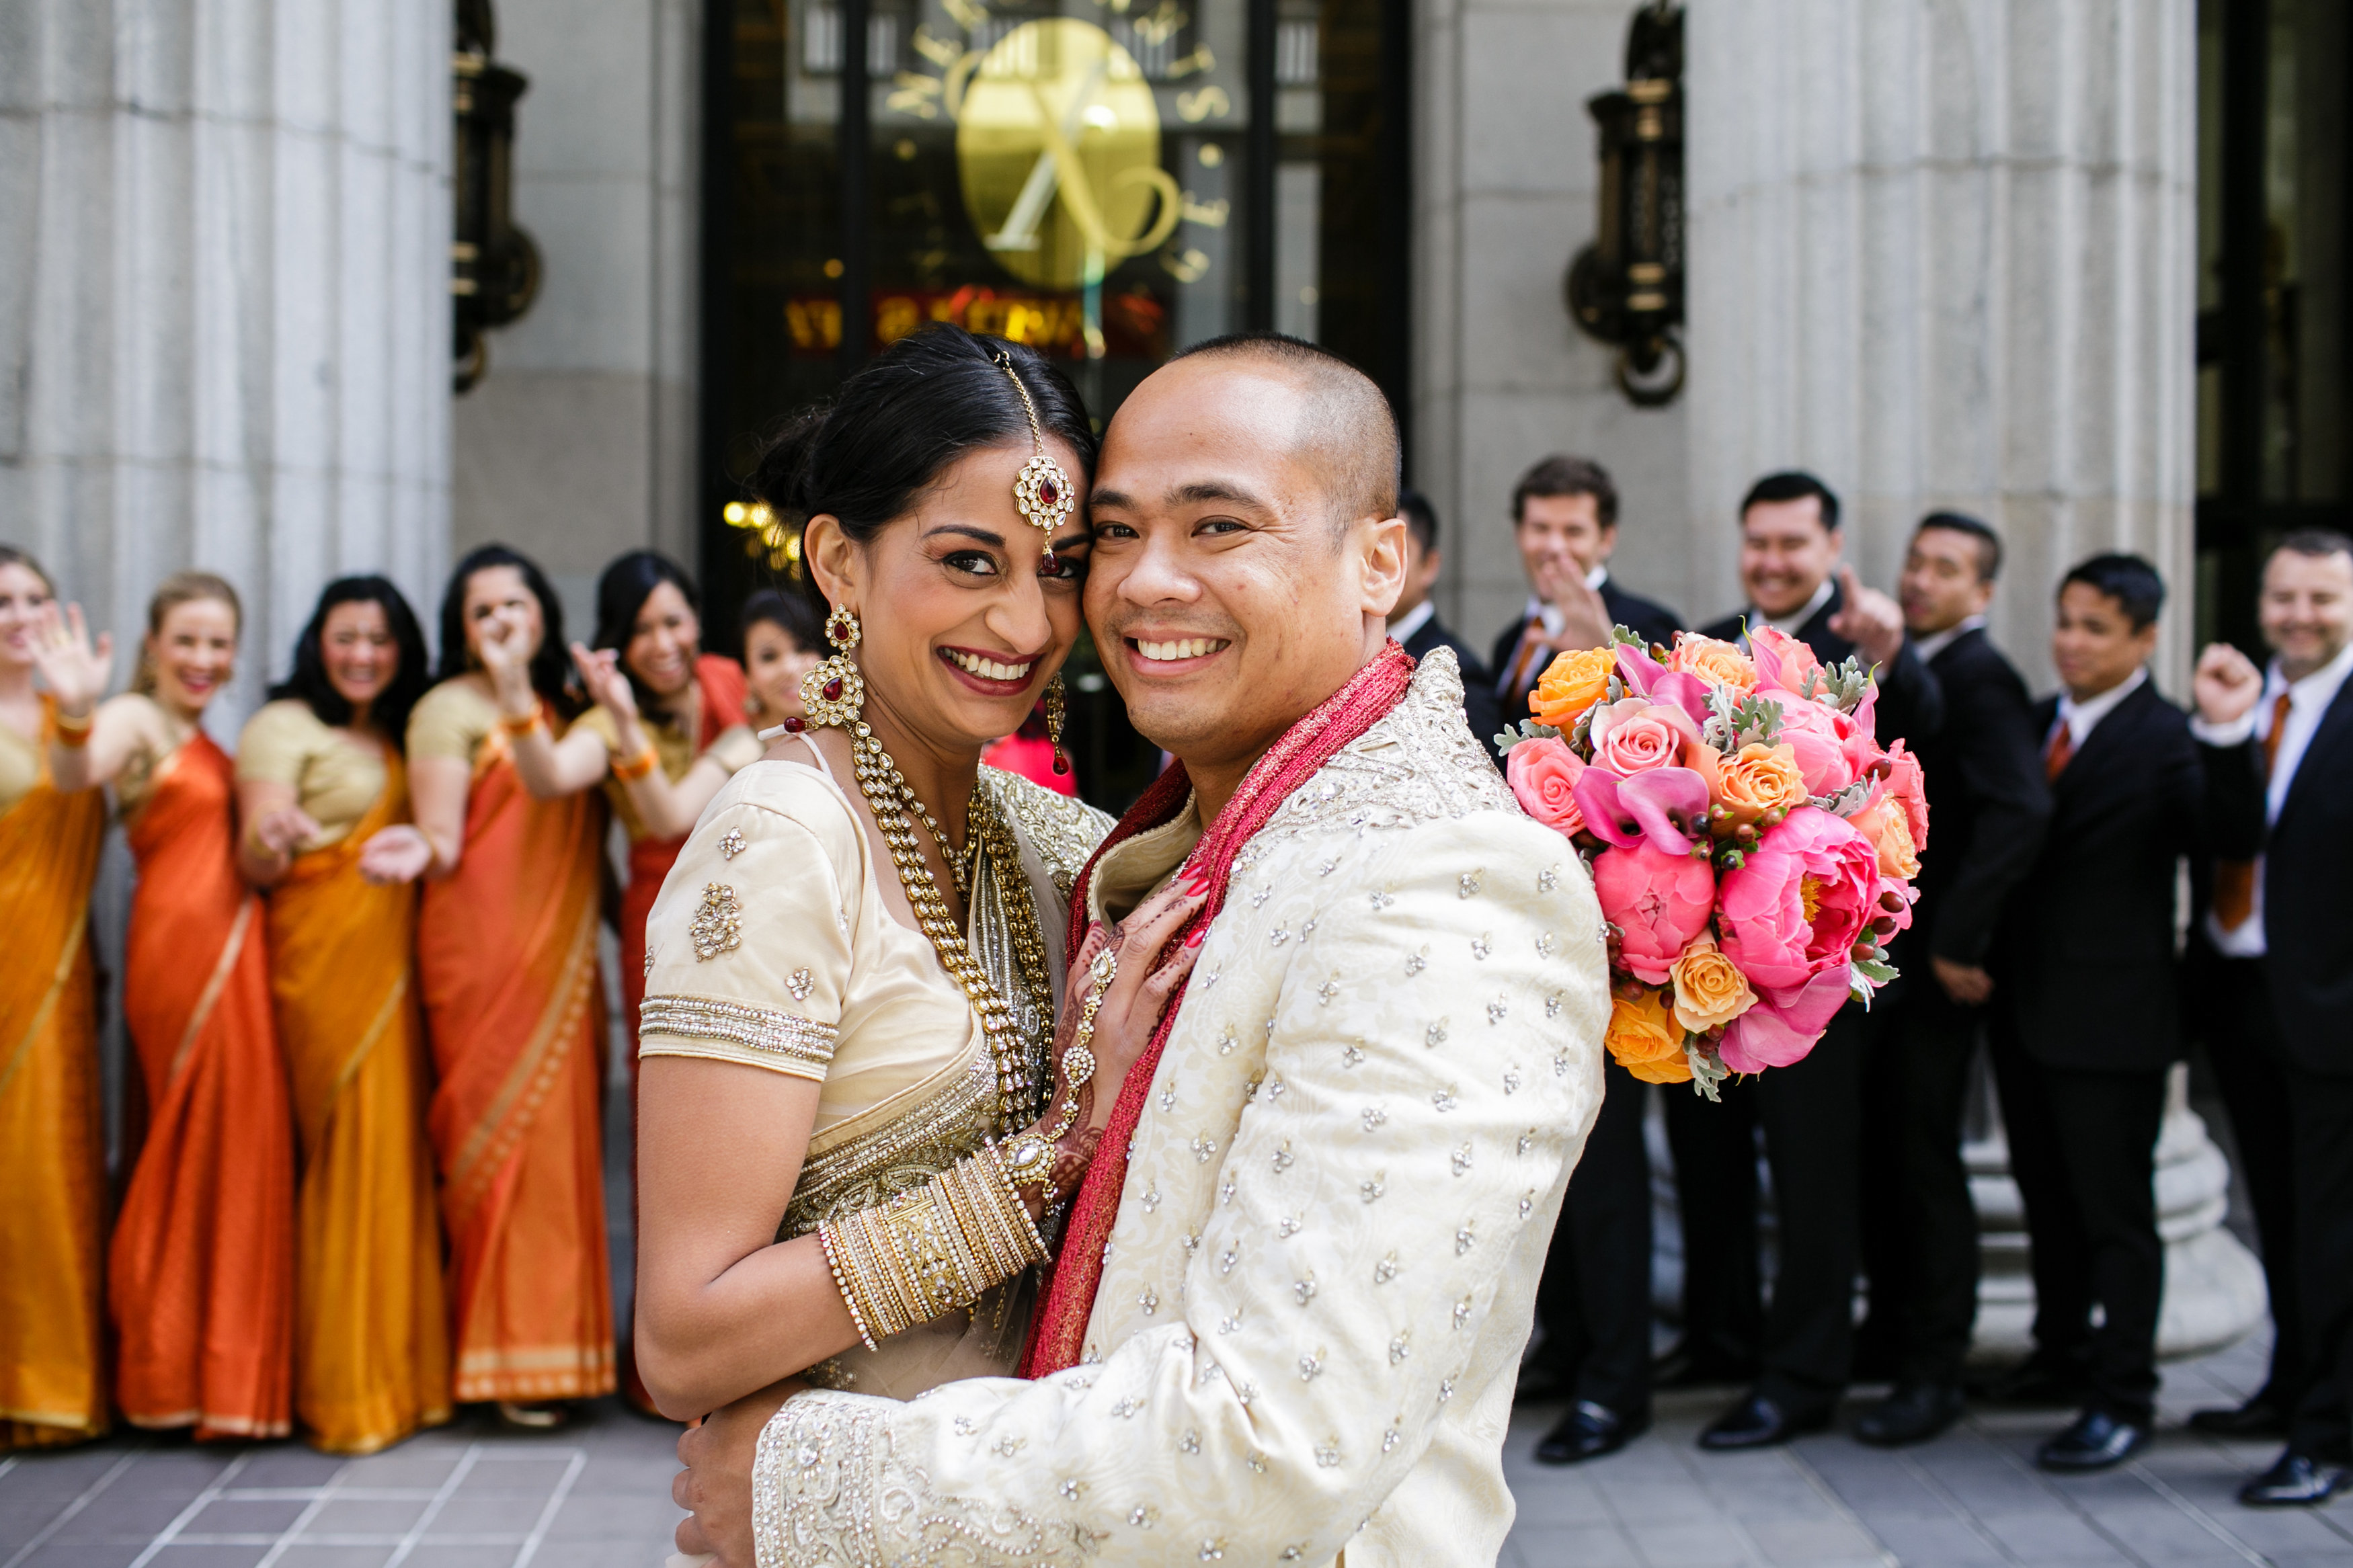 Southeast Asian Wedding at the Julia Morgan Ballroom in San Francisco, California. Event Design & Planning by Anaïs Event Planning & Design.